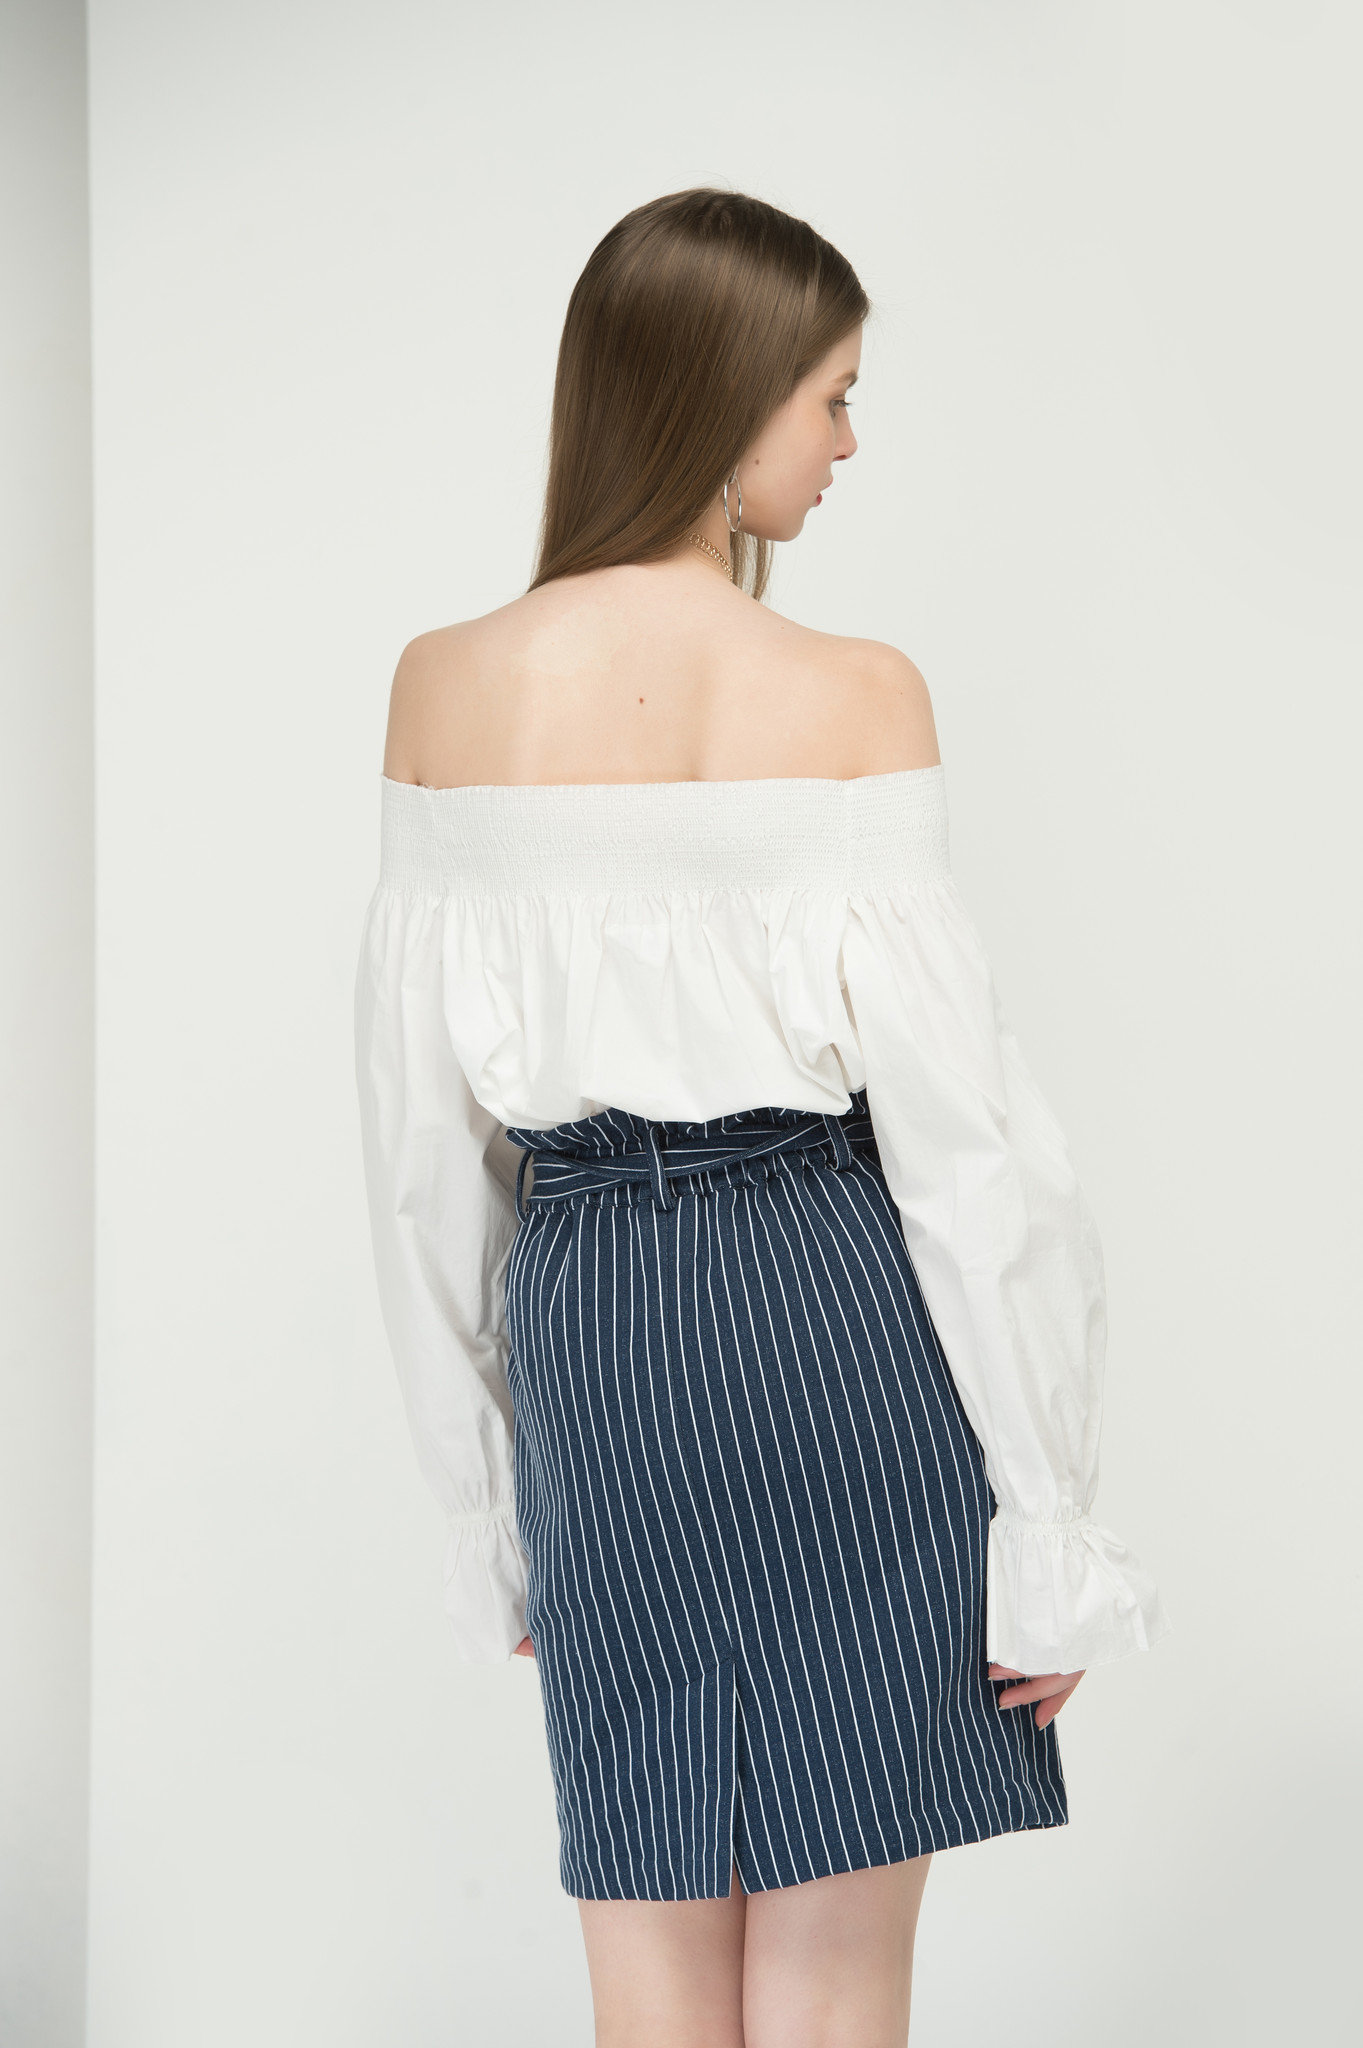 Off the shoulder white top3